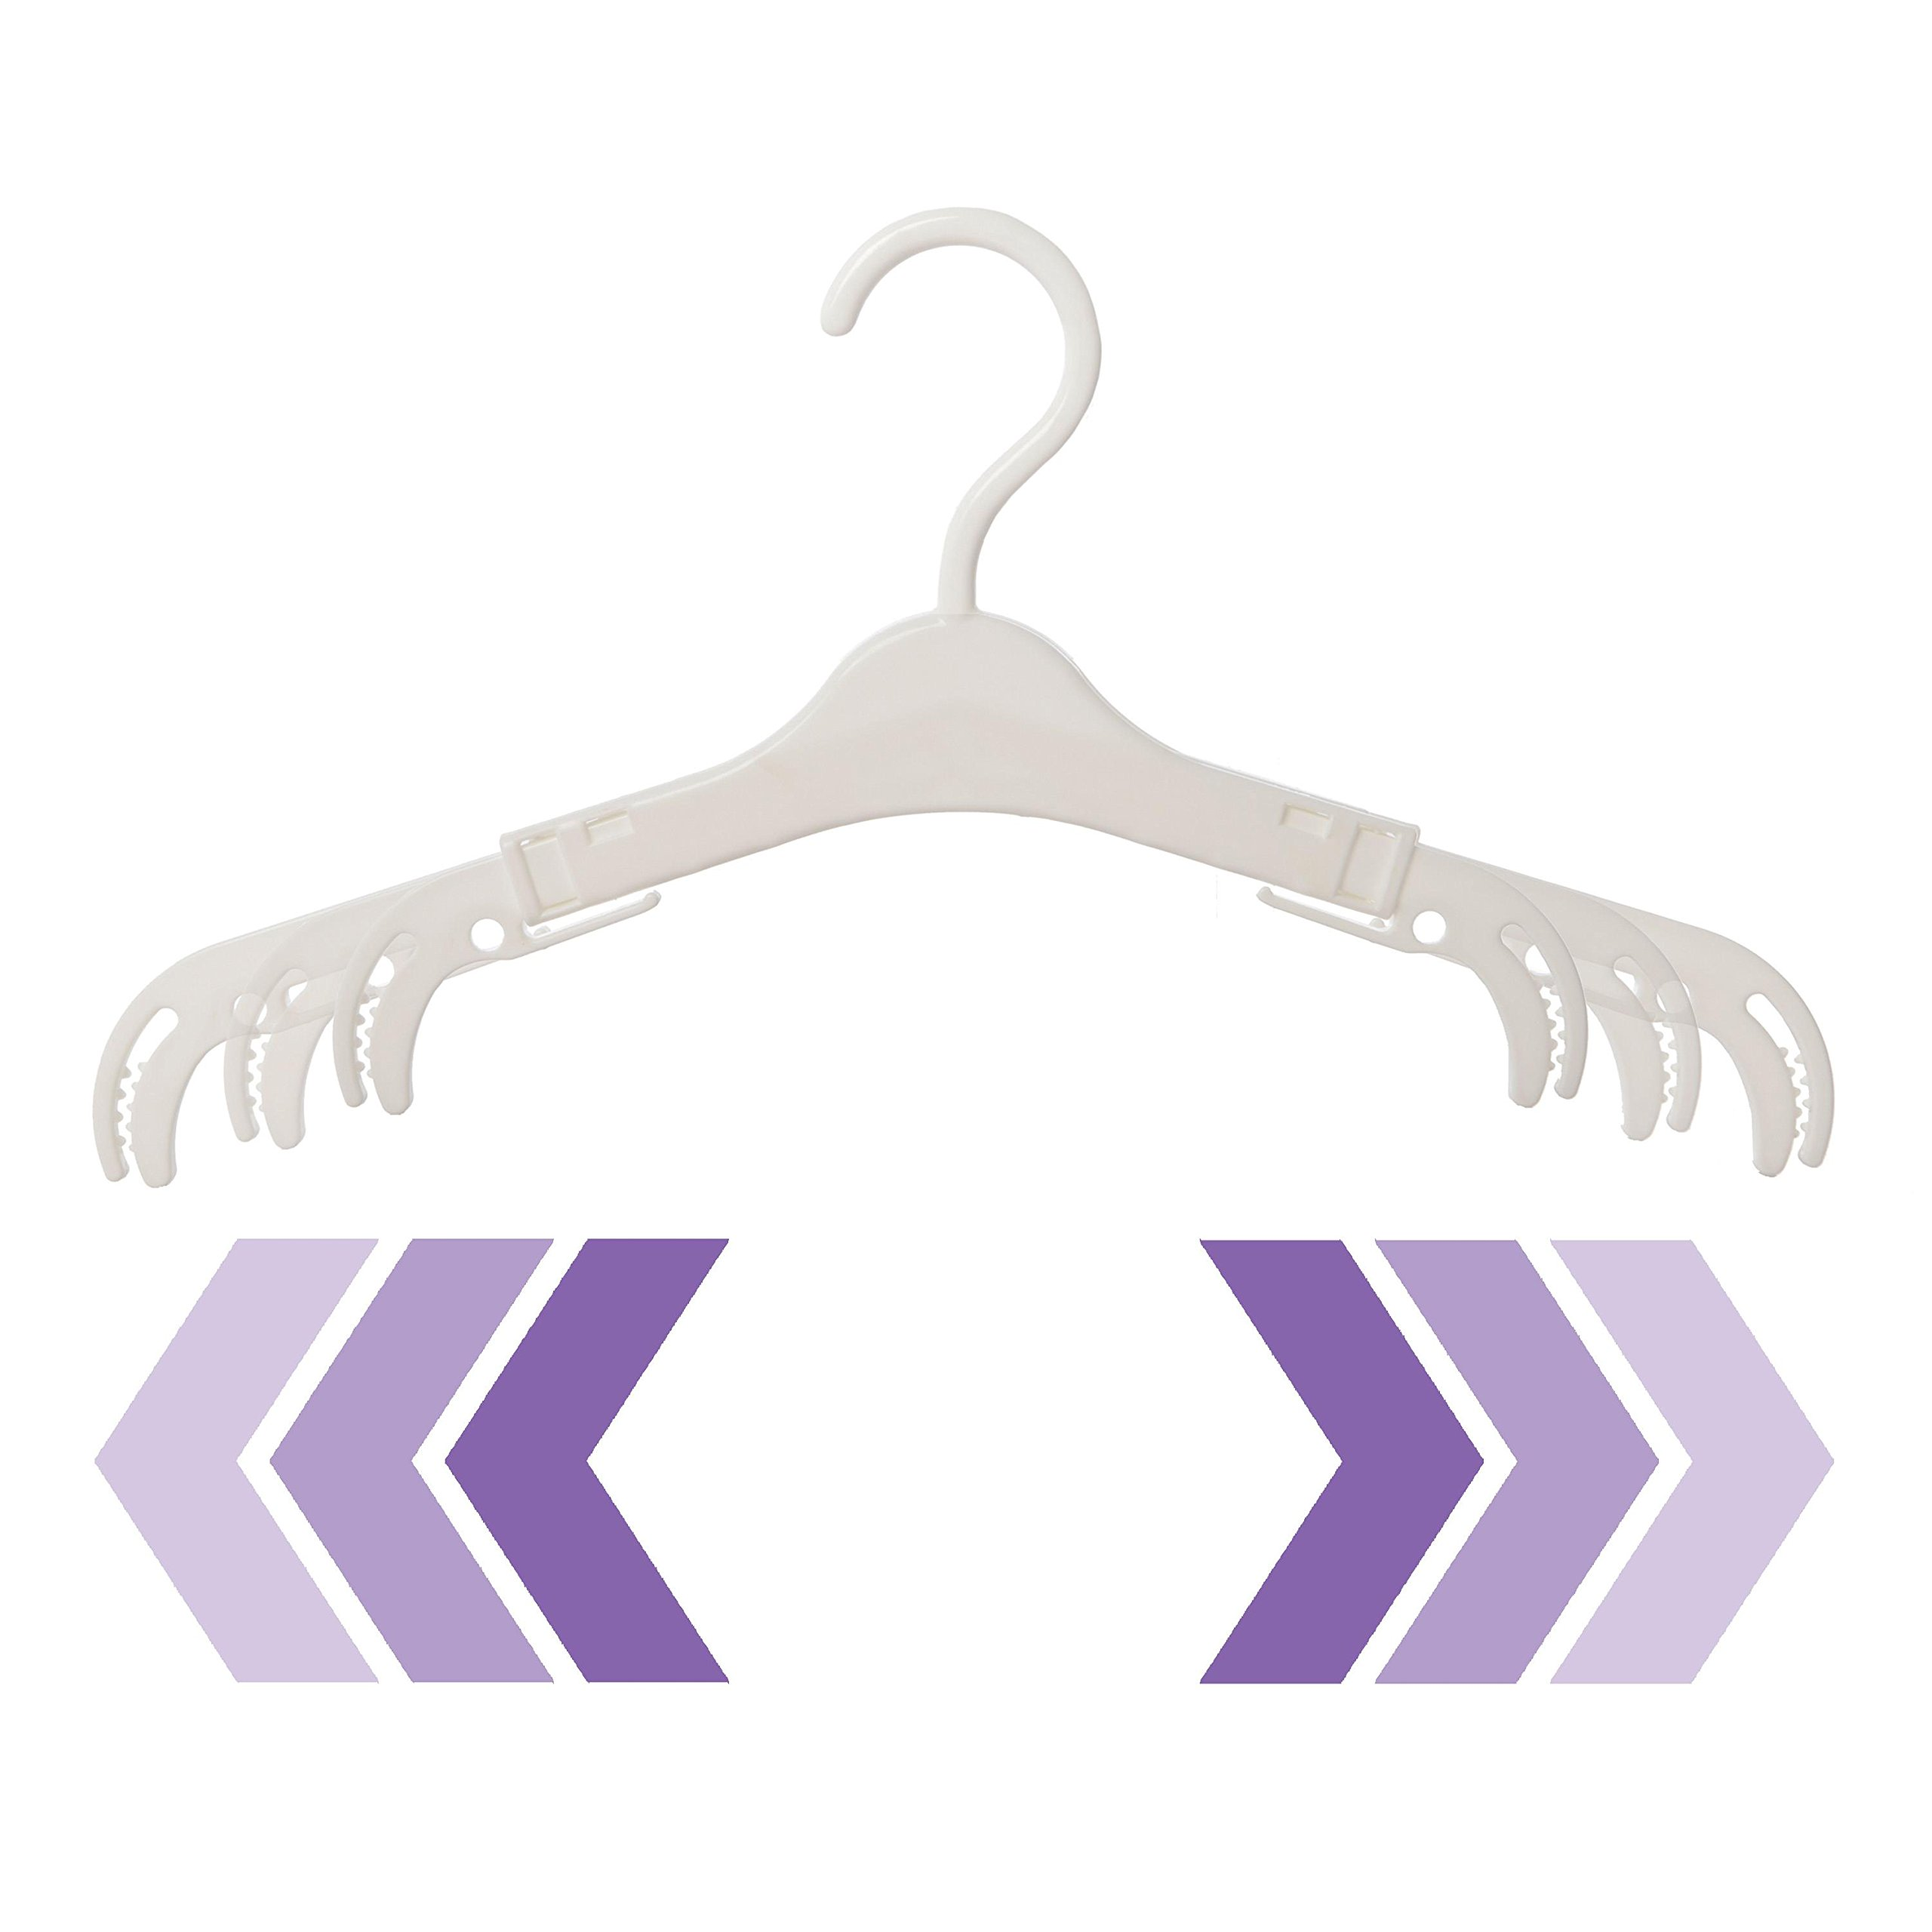 Dreambaby Grohangers, 4 Count, White by Dreambaby (Image #3)